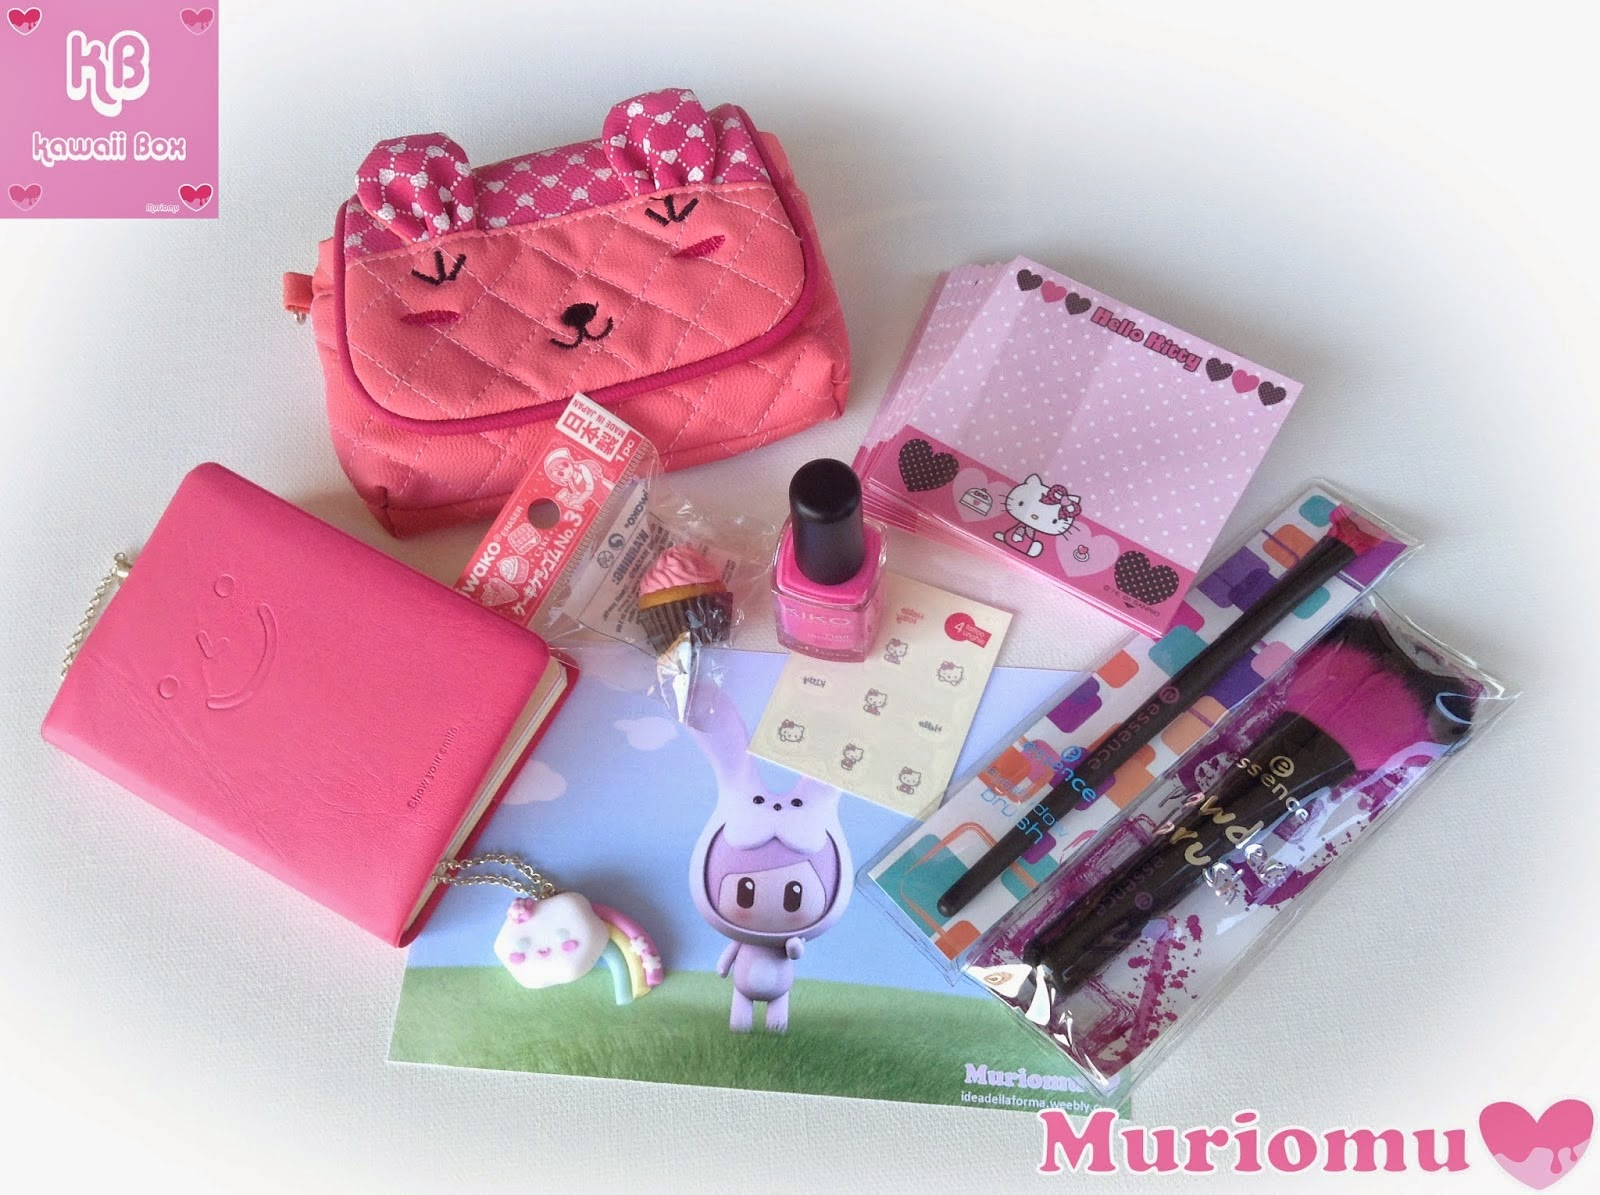 http://ilmeravigliosomondodimuriomu.blogspot.it/2014/08/coccoloday-kawaii-box-giveaway.html